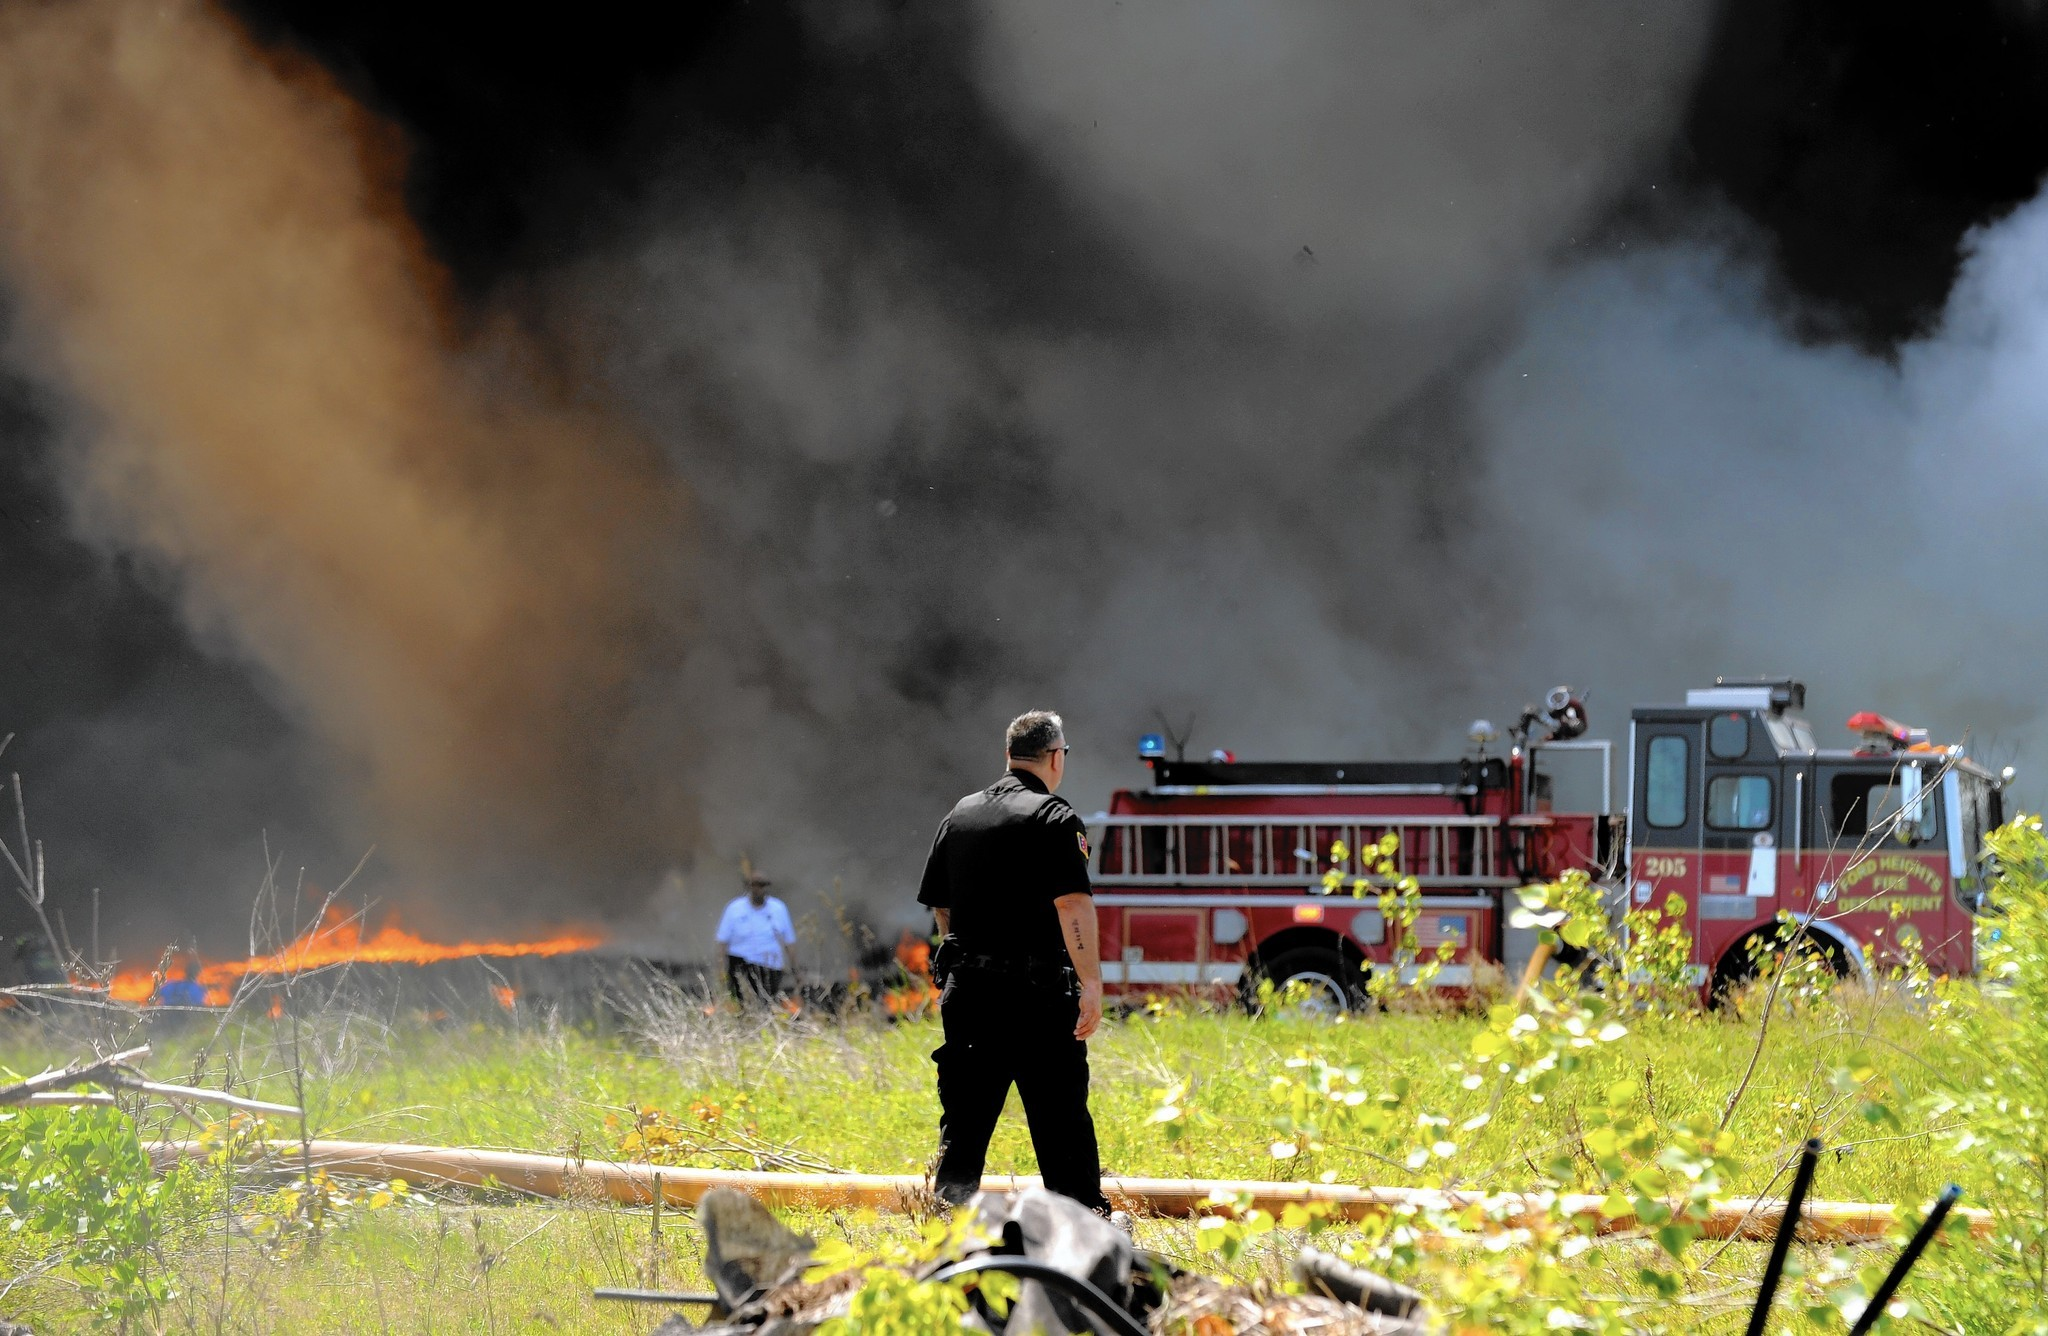 Smoke from fire at ford heights tire recycling center seen for miles daily southtown